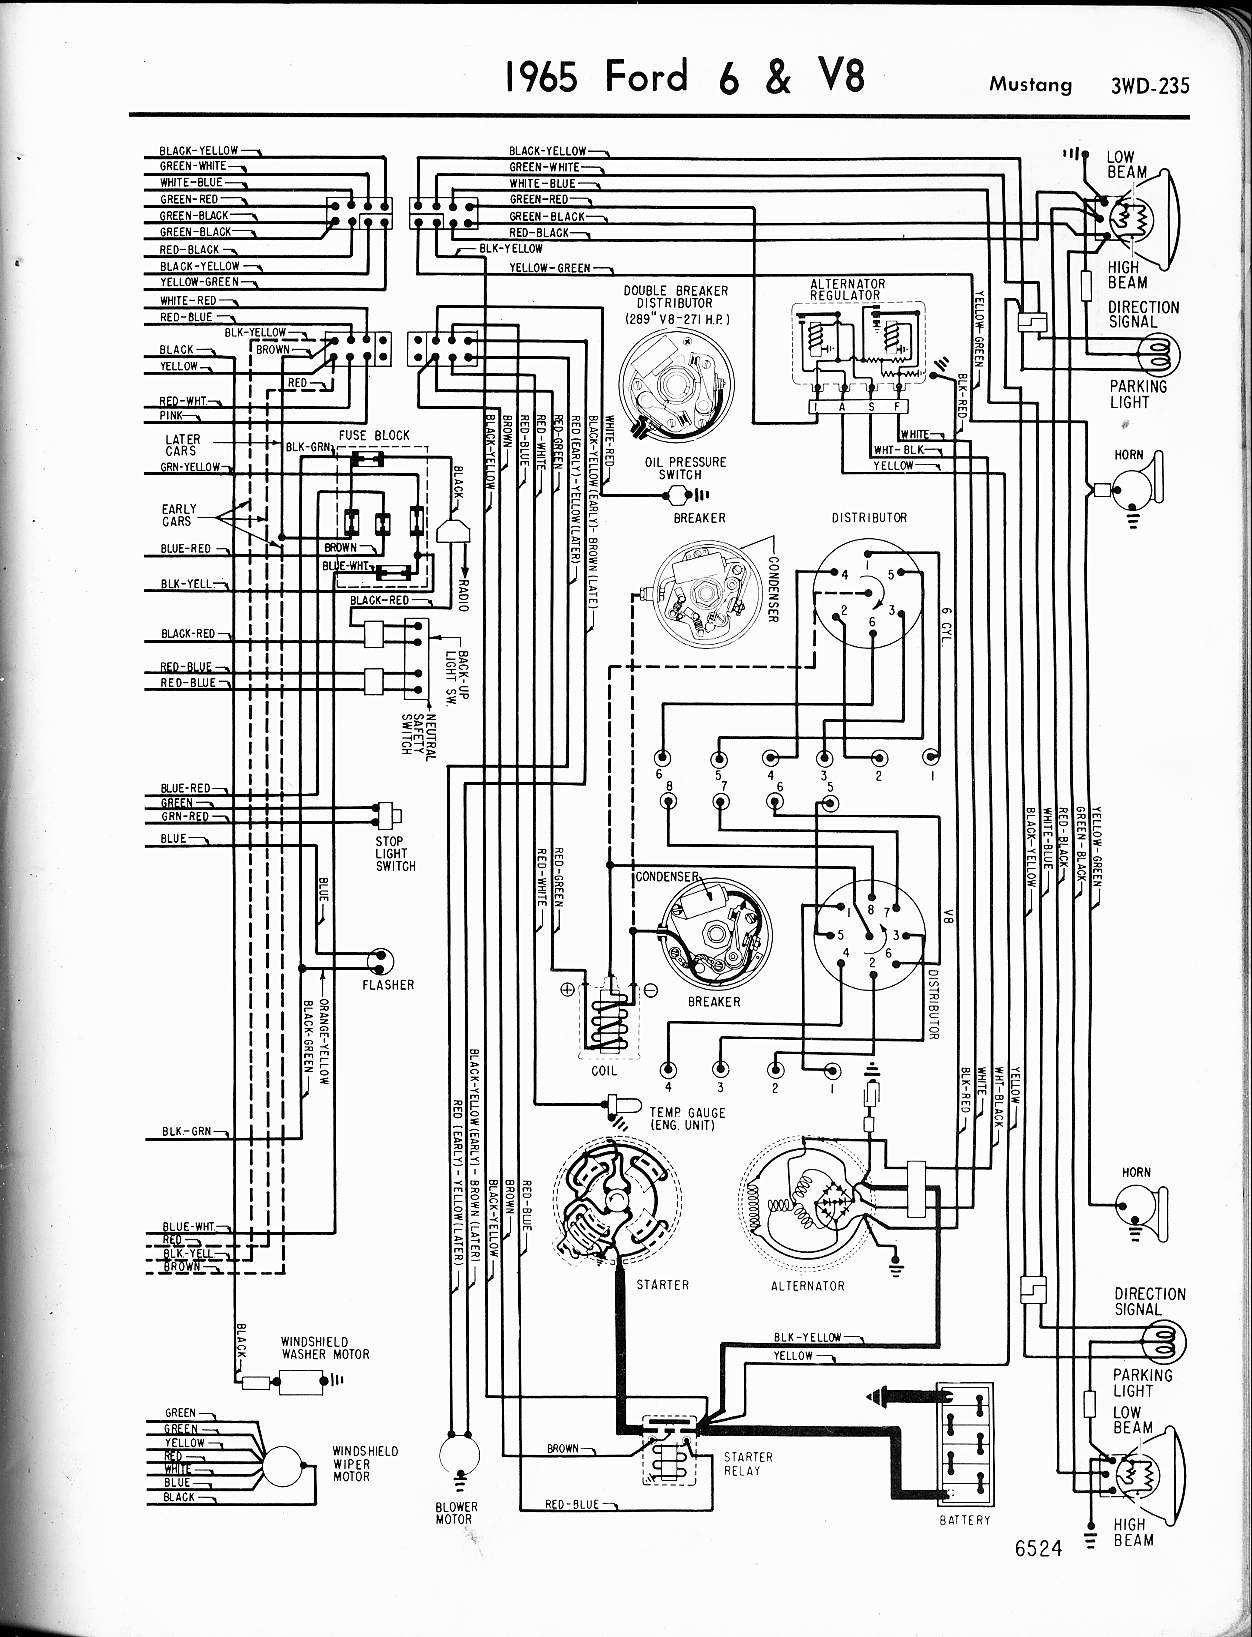 1965_mustang_wiring_2 ford diagrams 1965 thunderbird wiring harness at alyssarenee.co